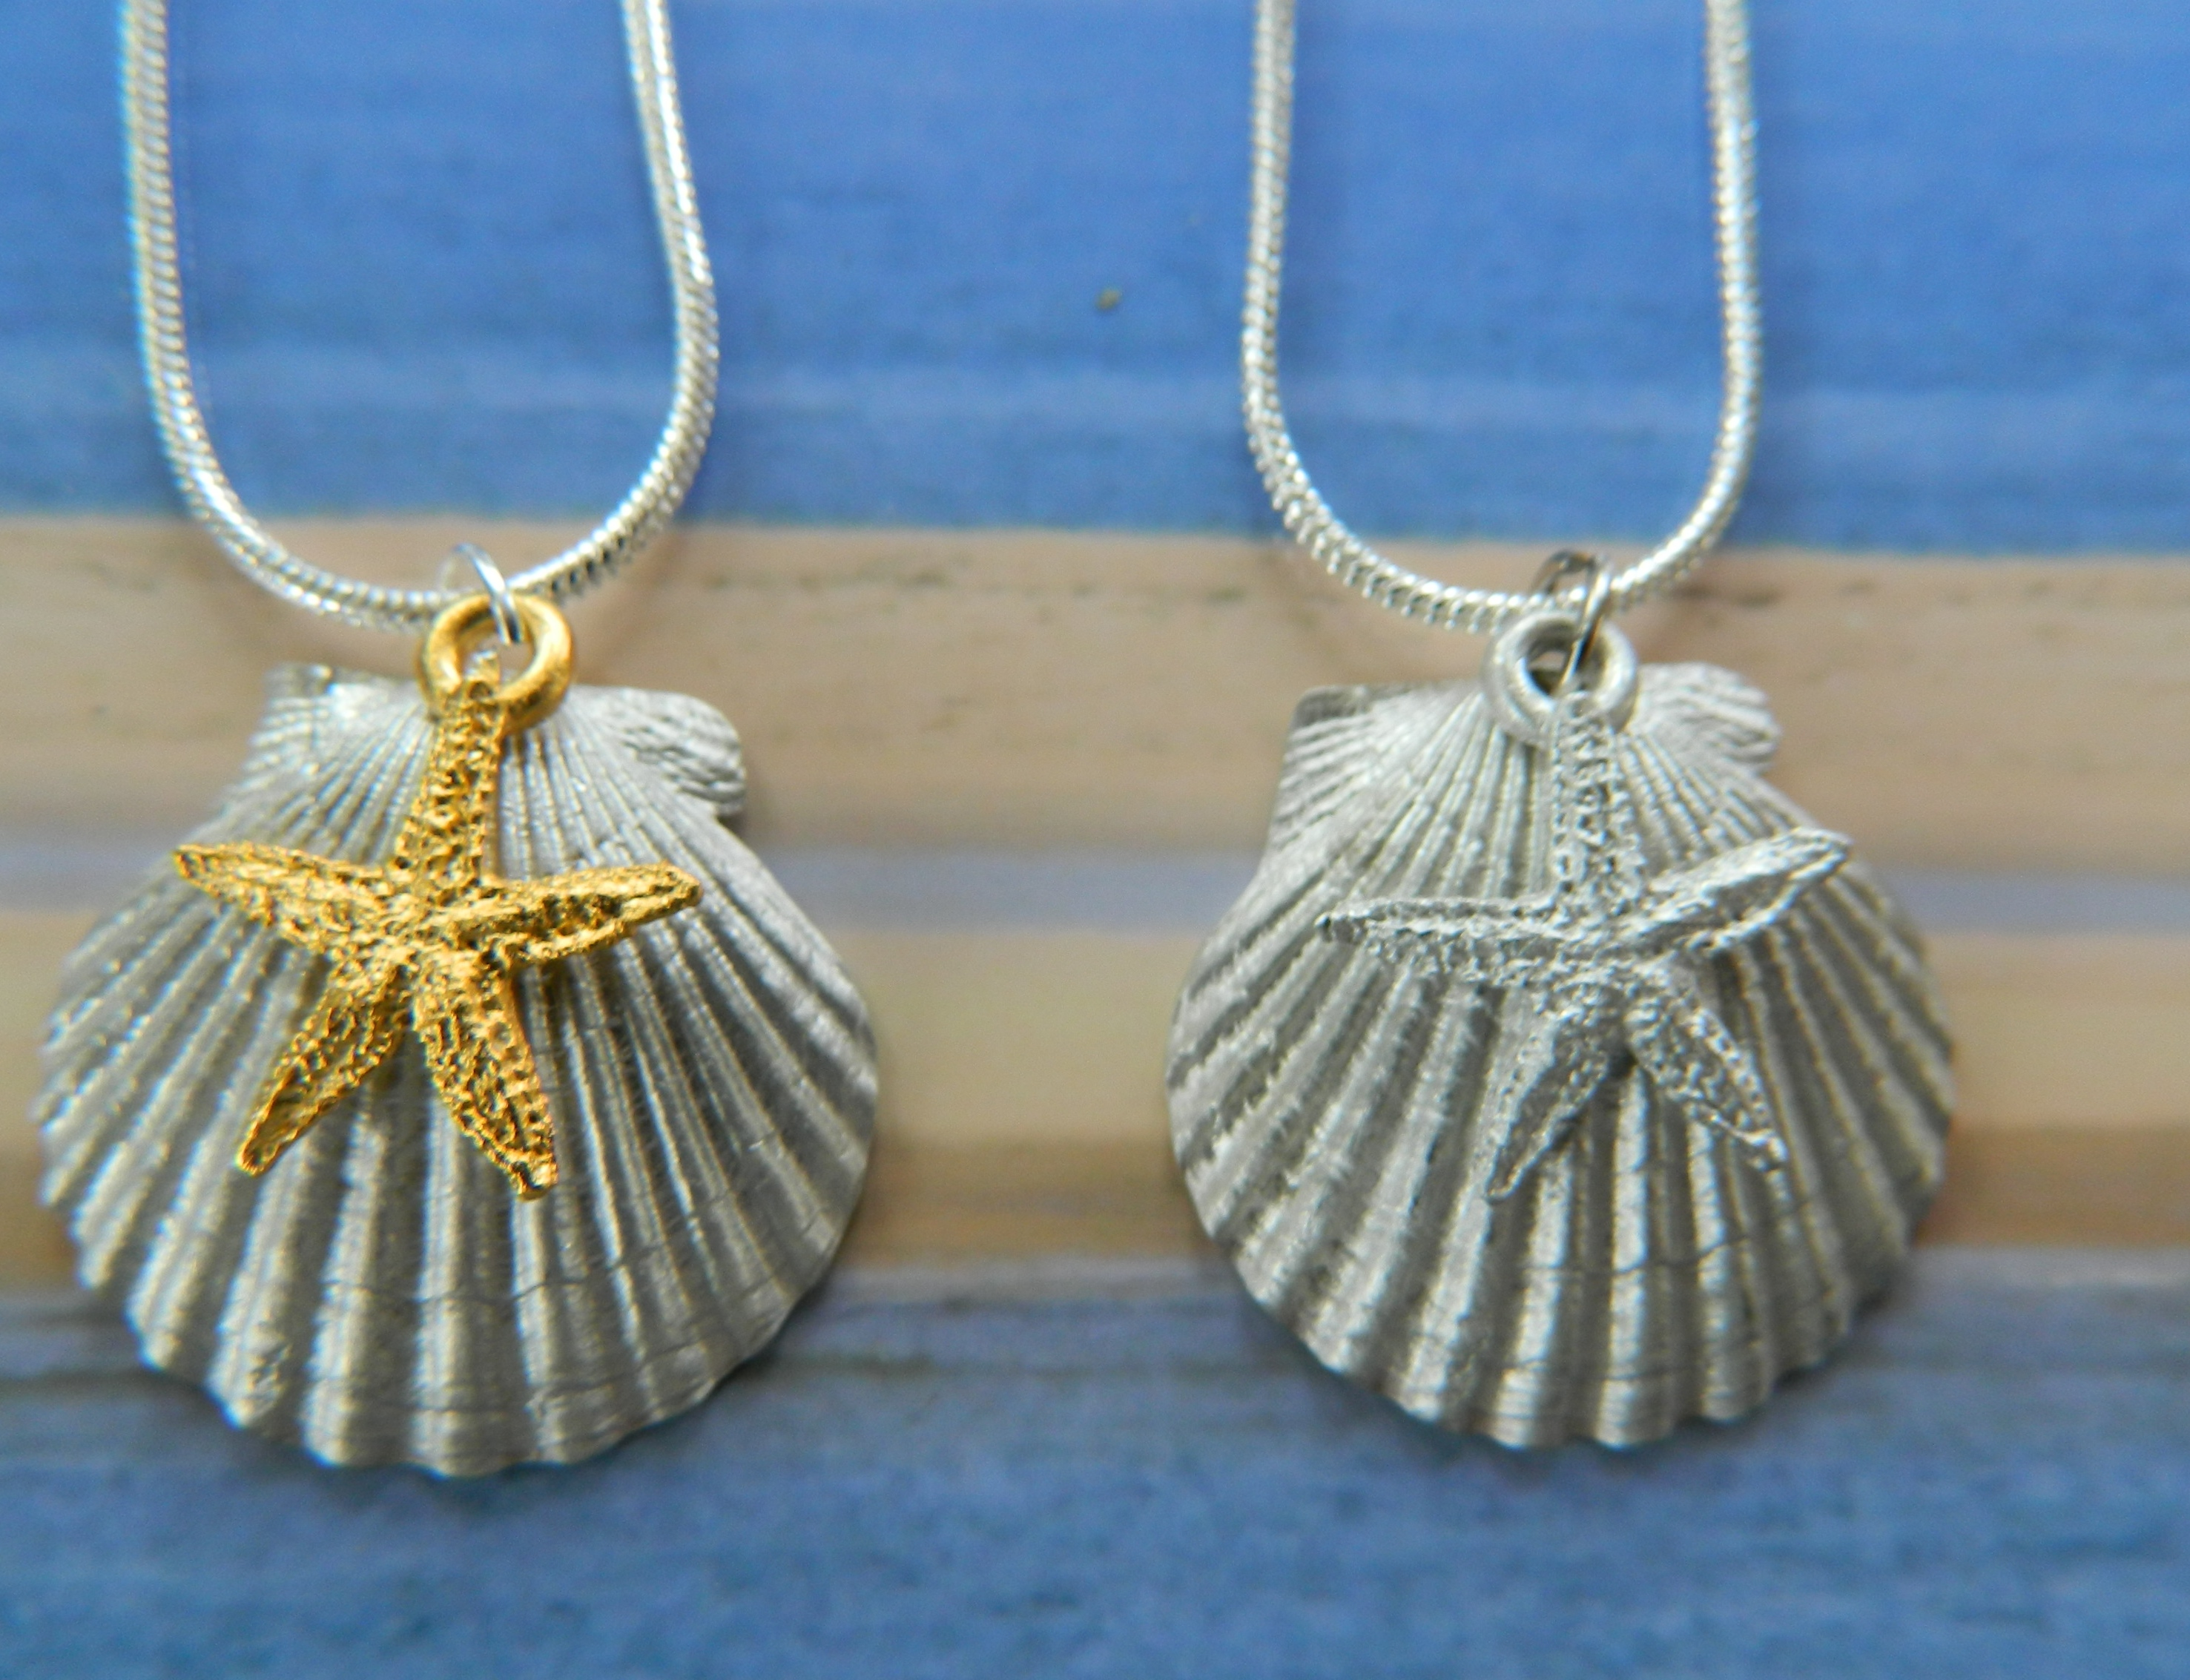 Scallop and Starfish Necklace